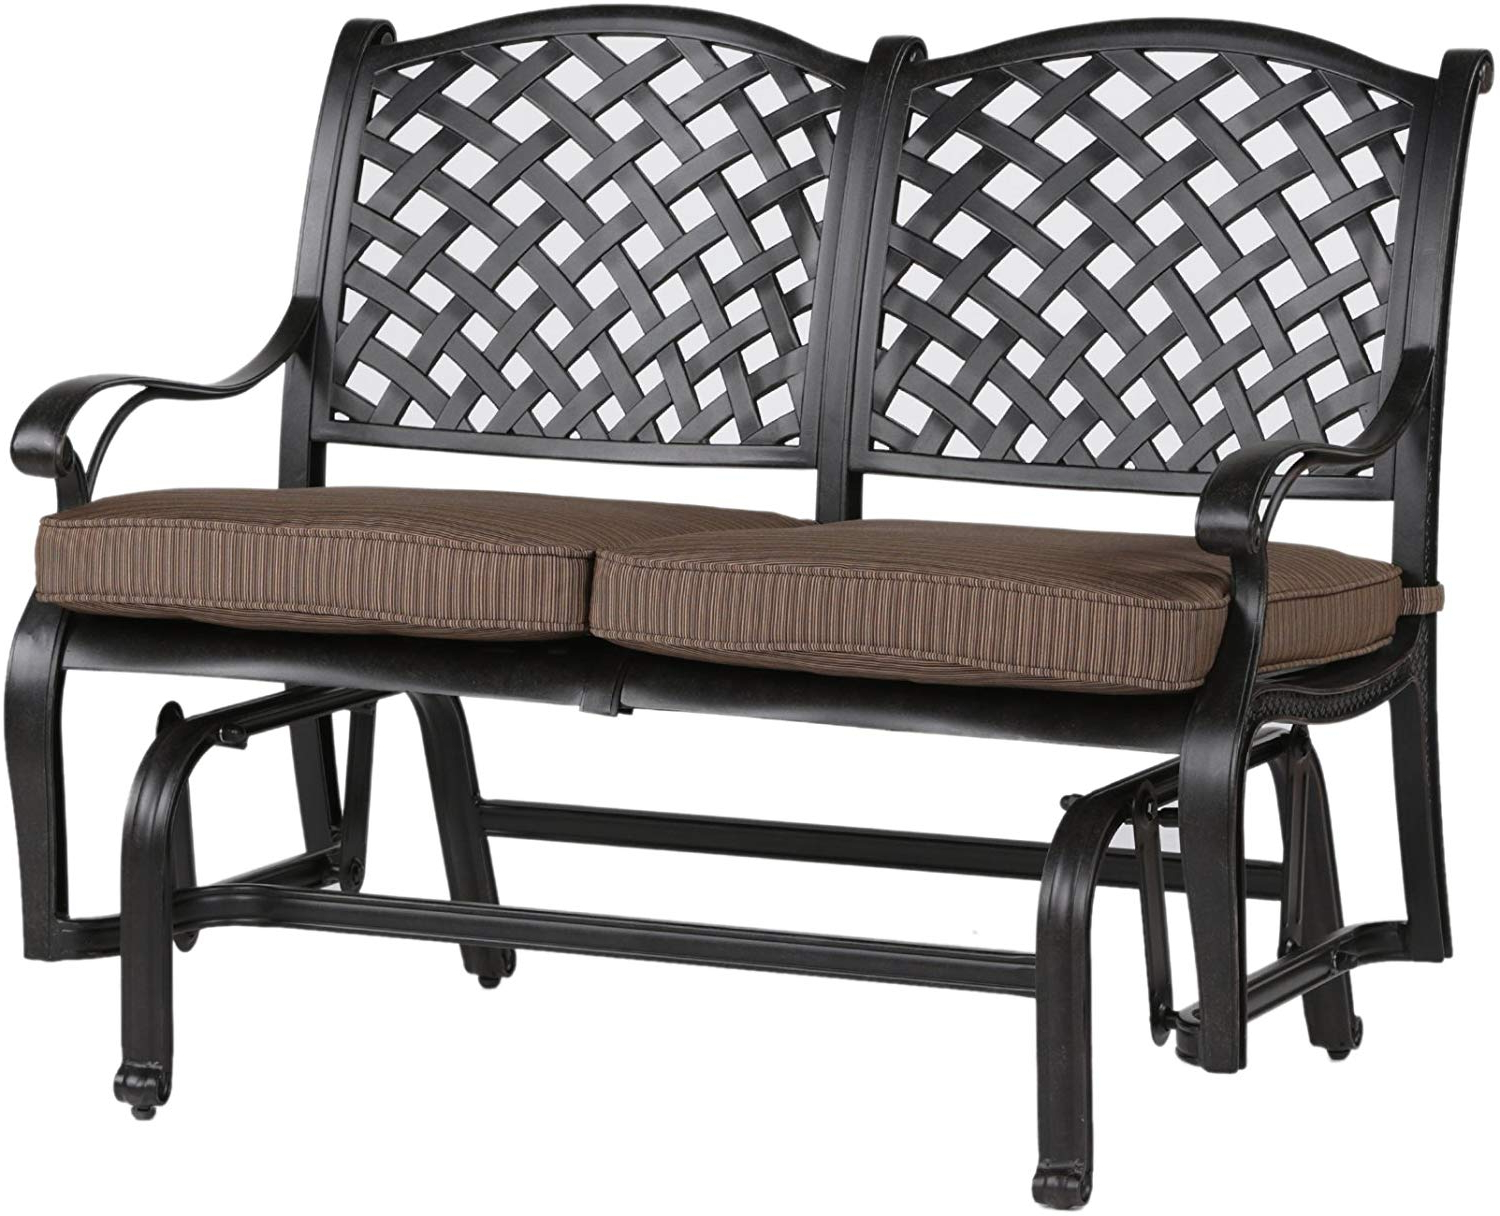 Ipatio Sparta Bench Glider With Cushion – Outdoor Metal Glider Throughout Widely Used Aluminum Glider Benches With Cushion (View 20 of 30)